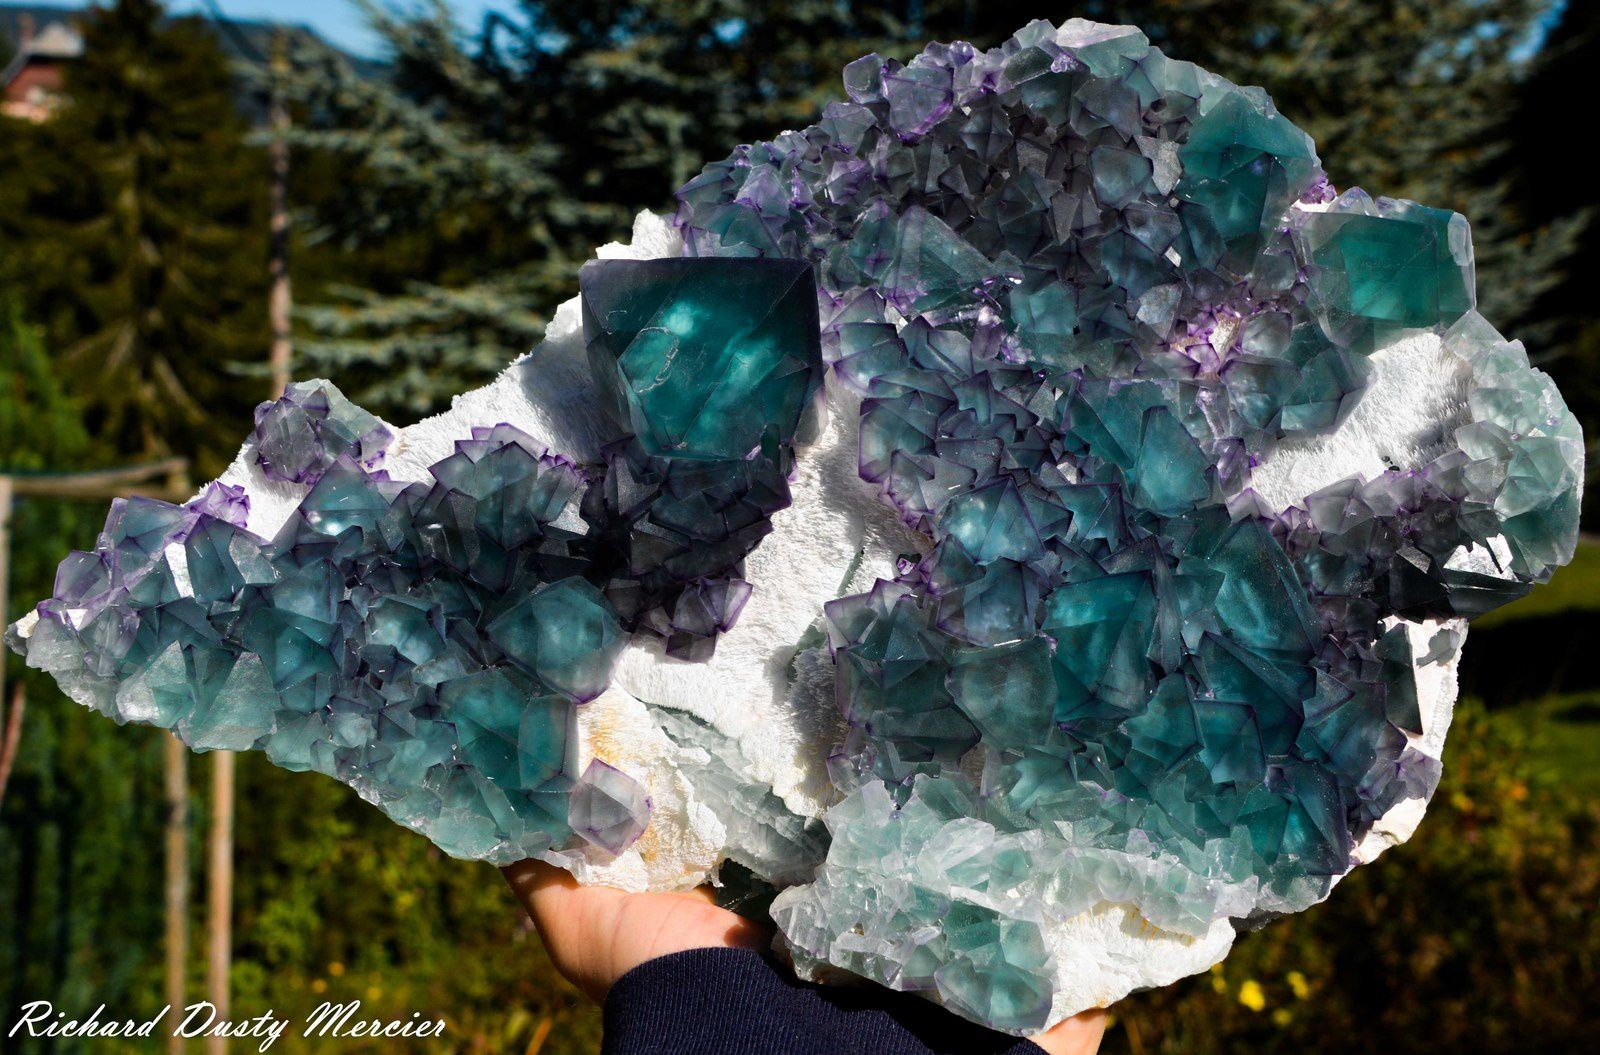 Fluorite from De'An Mine, China (Specimen and Photo: Richard Dusty Mercier)